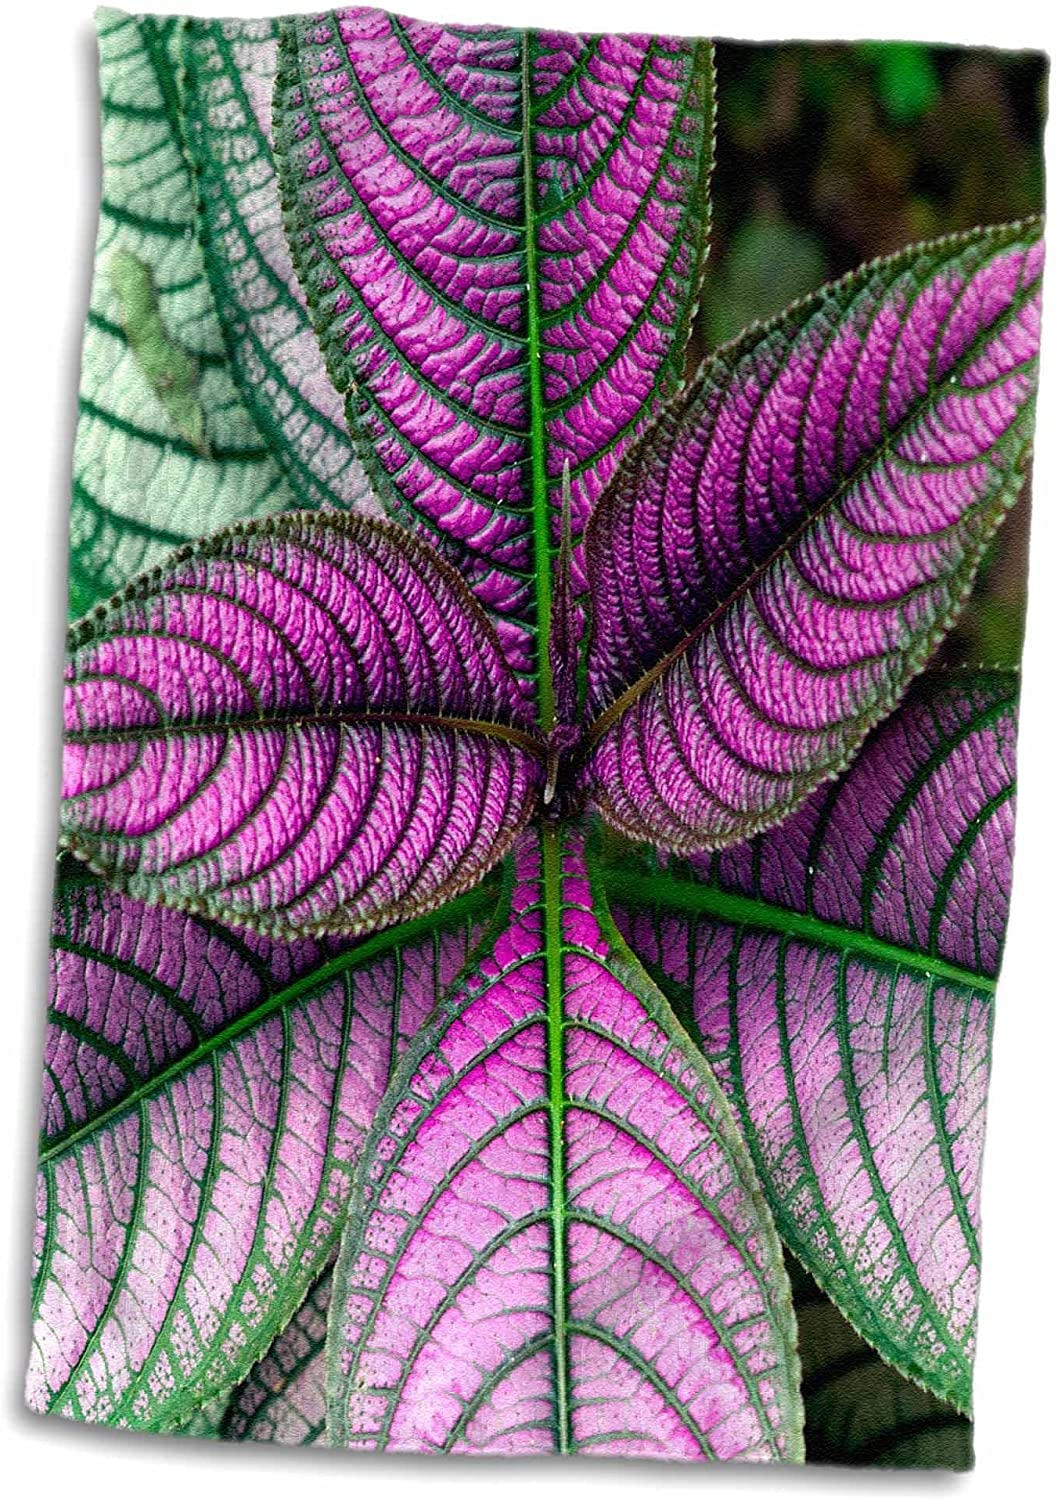 3D Rose Persian Shield Plant-Strobilanthes Dyerianus-Costa Rica Hand Towel, 15